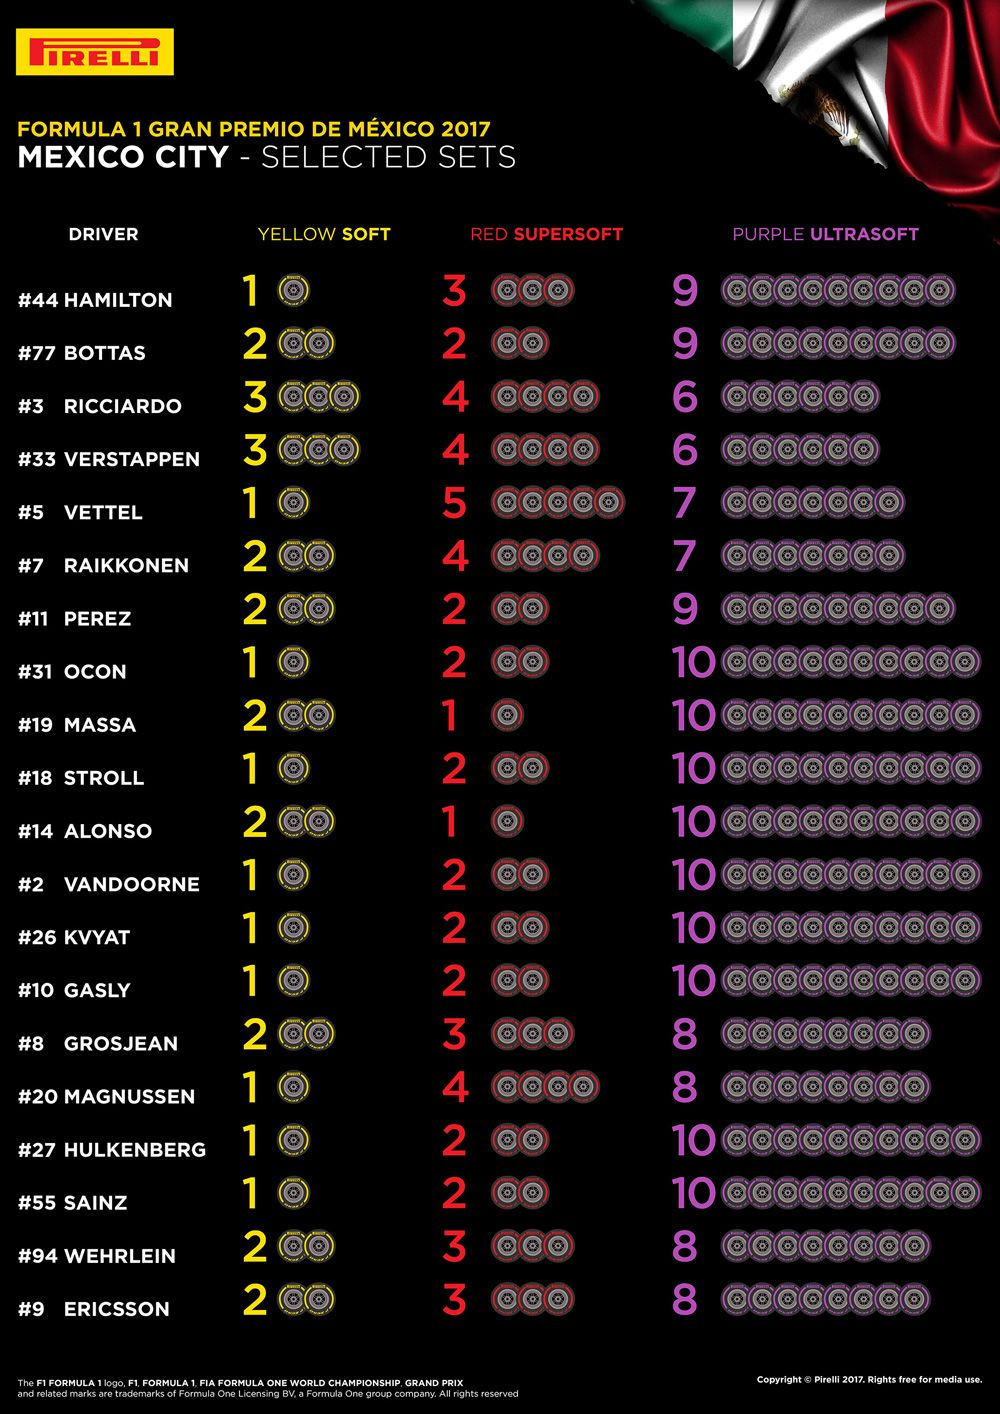 Selected tyres for teams and drivers for 2017 Mexico Grand Prix